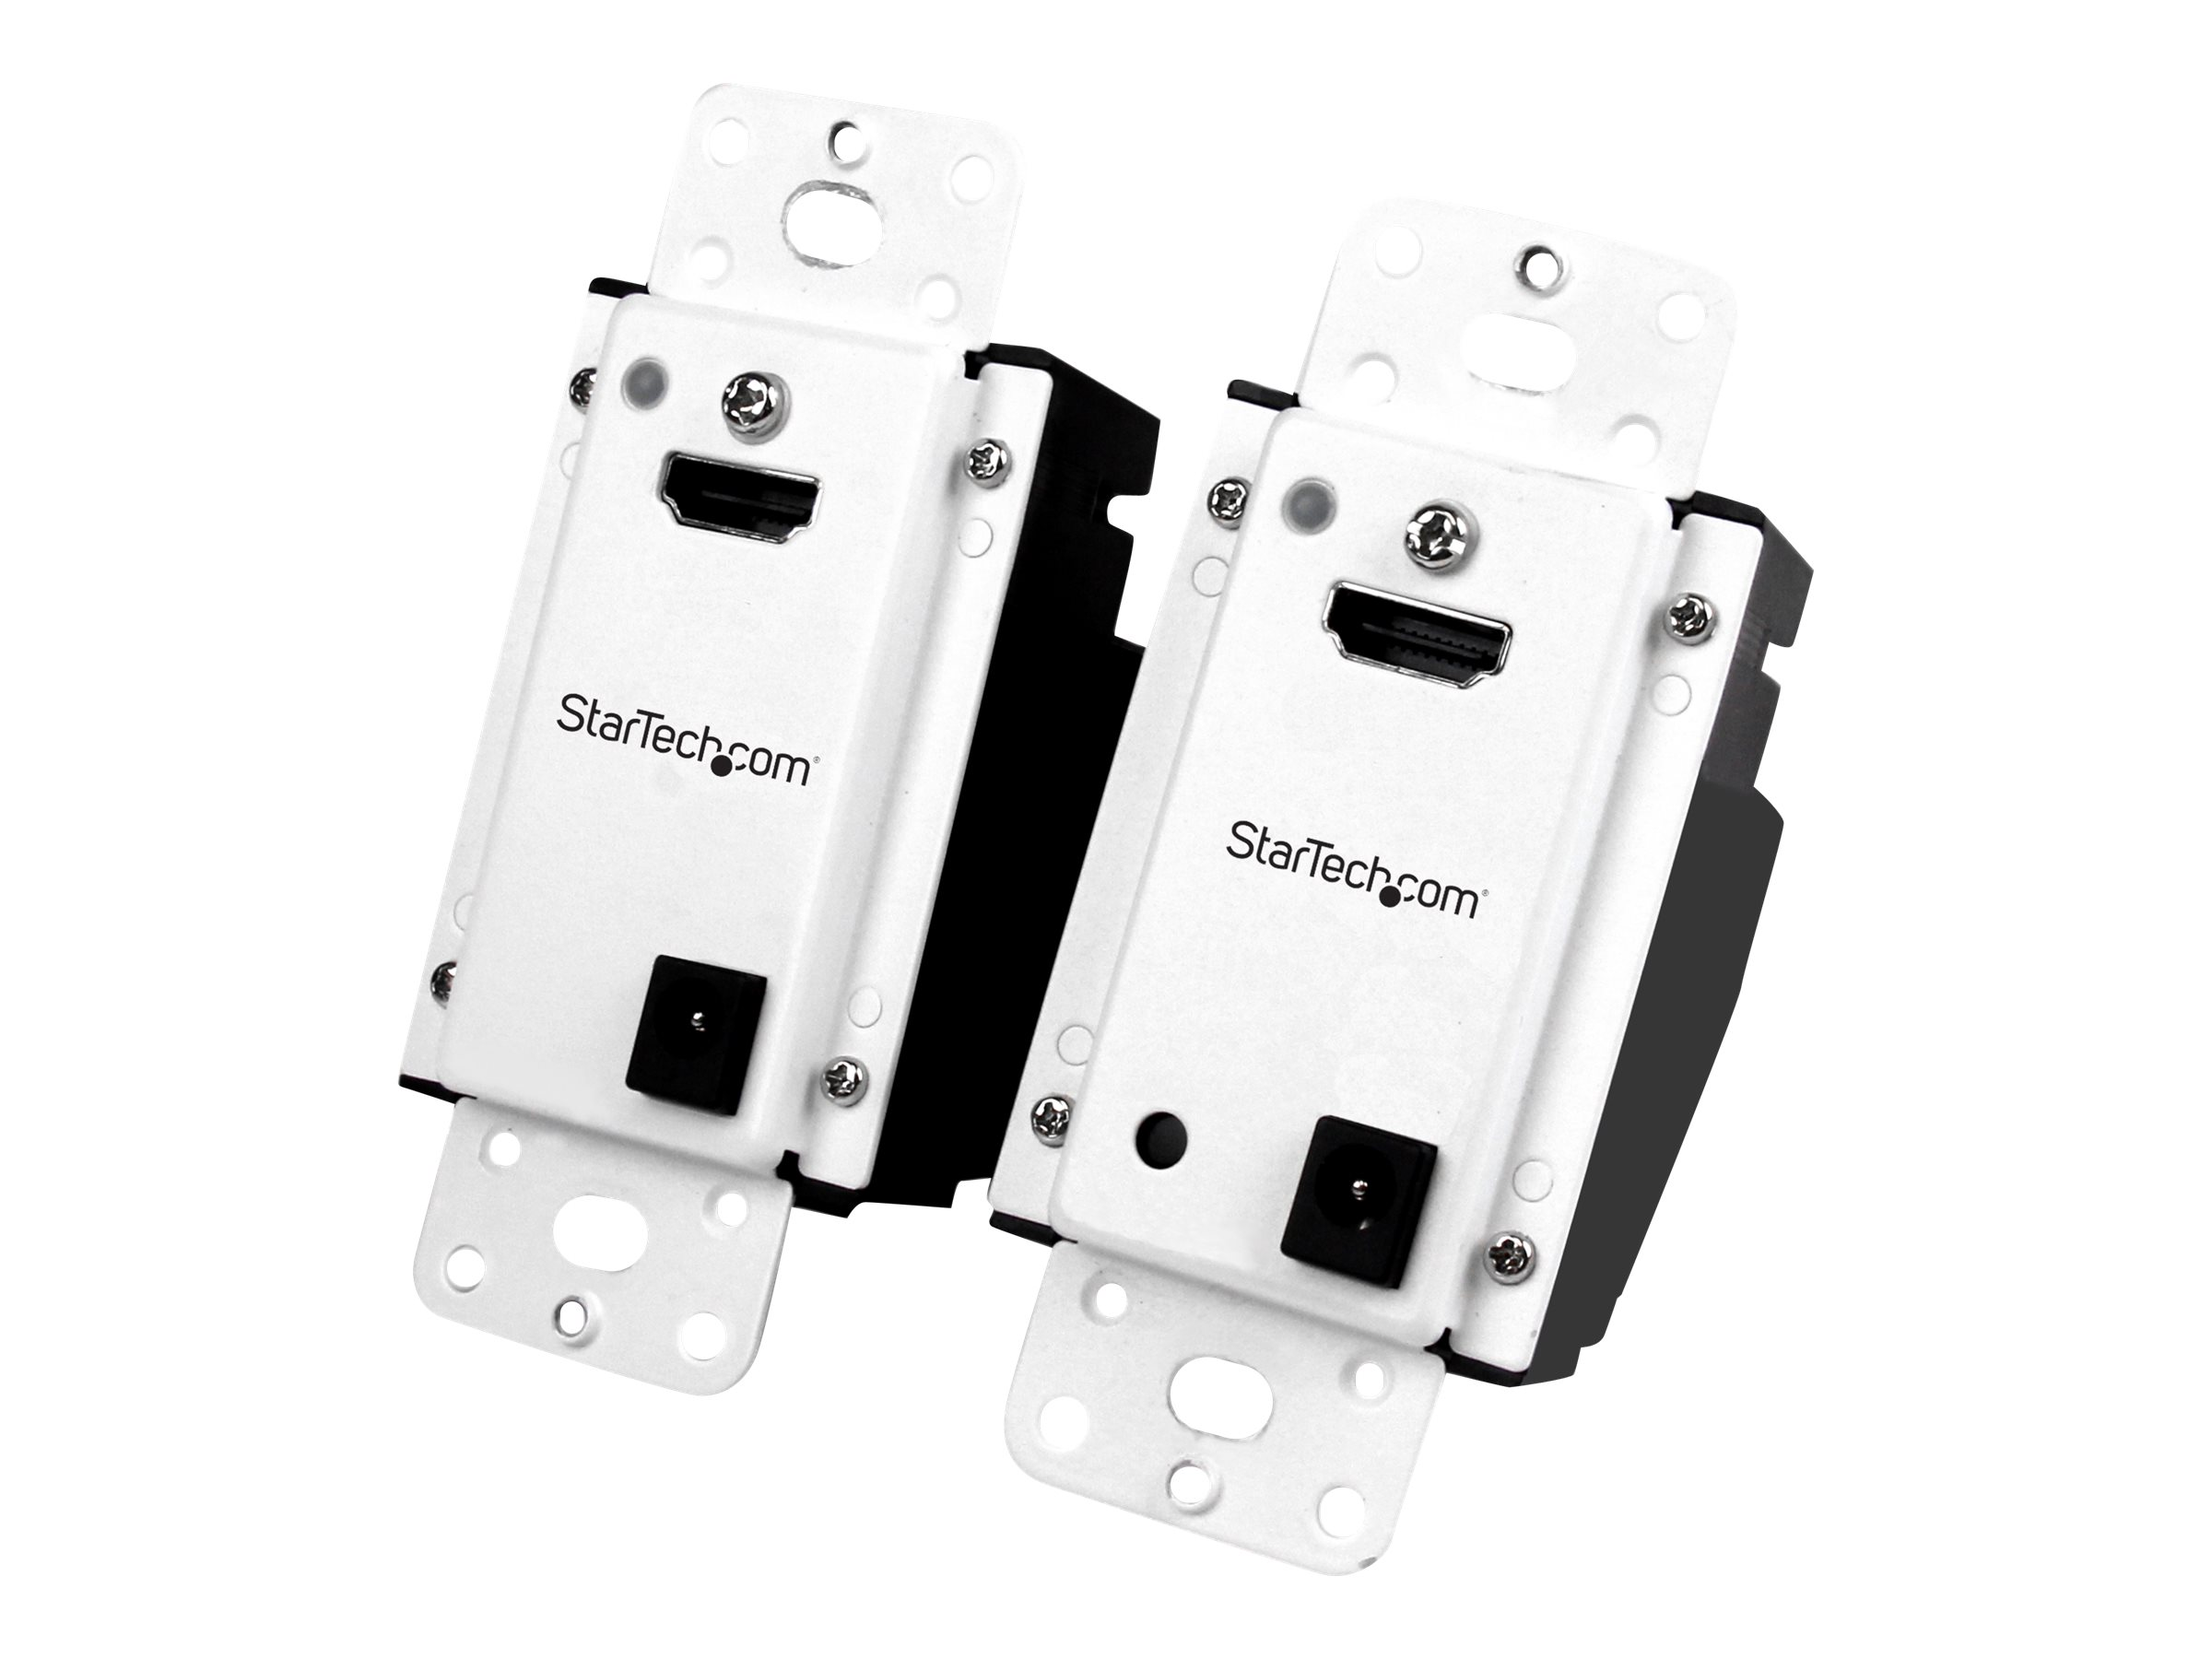 StarTech.com Wall Plate HDMI over CAT5 Extender with Power Over Cable HDMI CAT5 or CAT6 Audio Video Extender Kit 1080p …